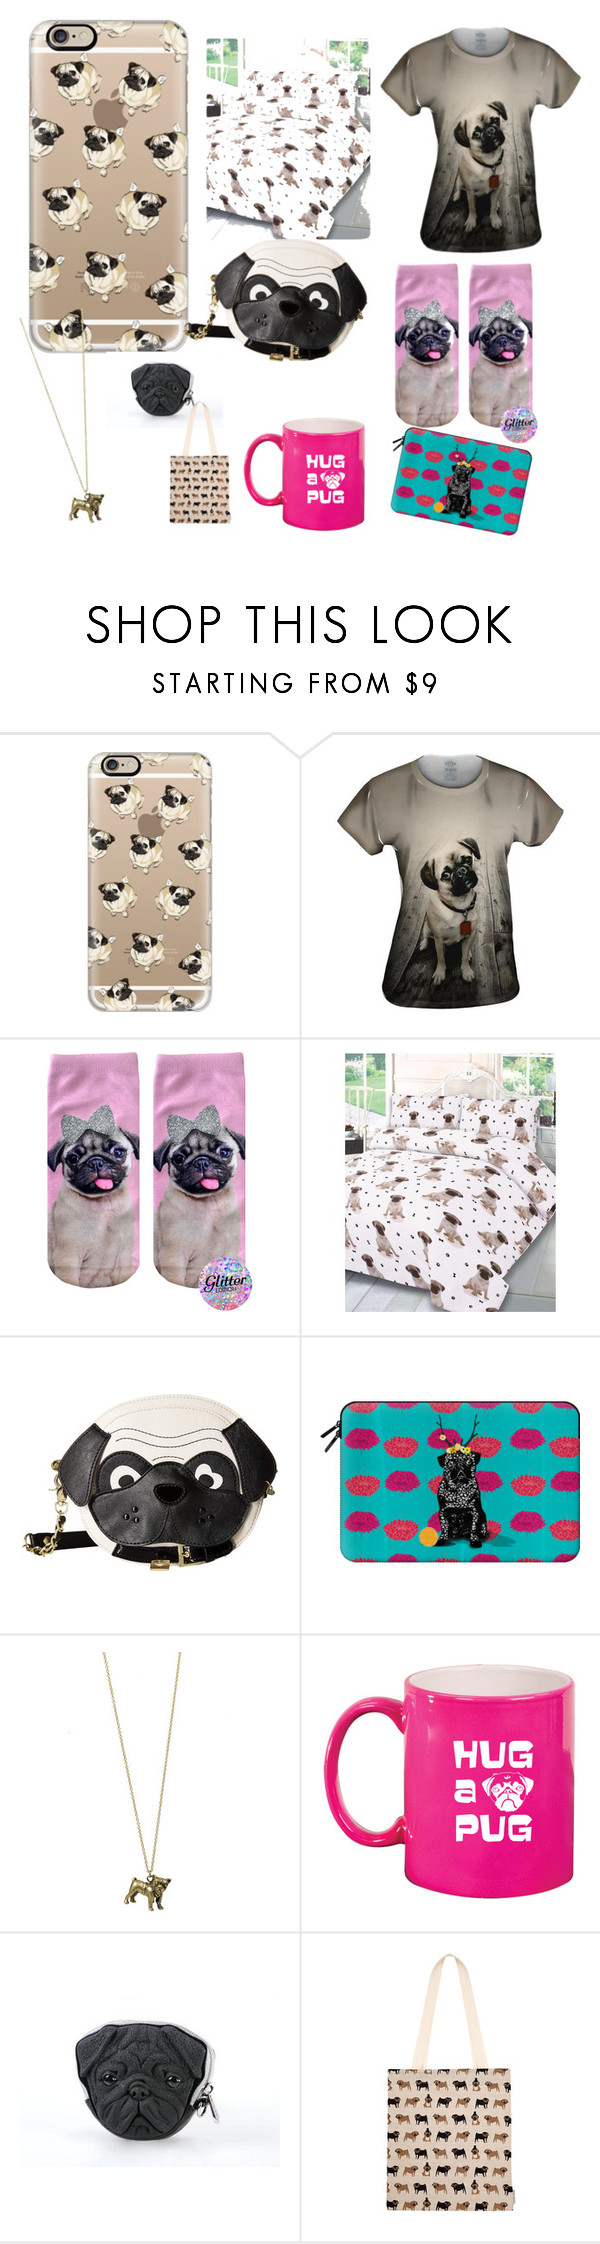 """Pugs pugs pugs"" by officialtanyaburr1 ❤ liked on Polyvore featuring Casetify, Betsey Johnson and Fenella Smith"